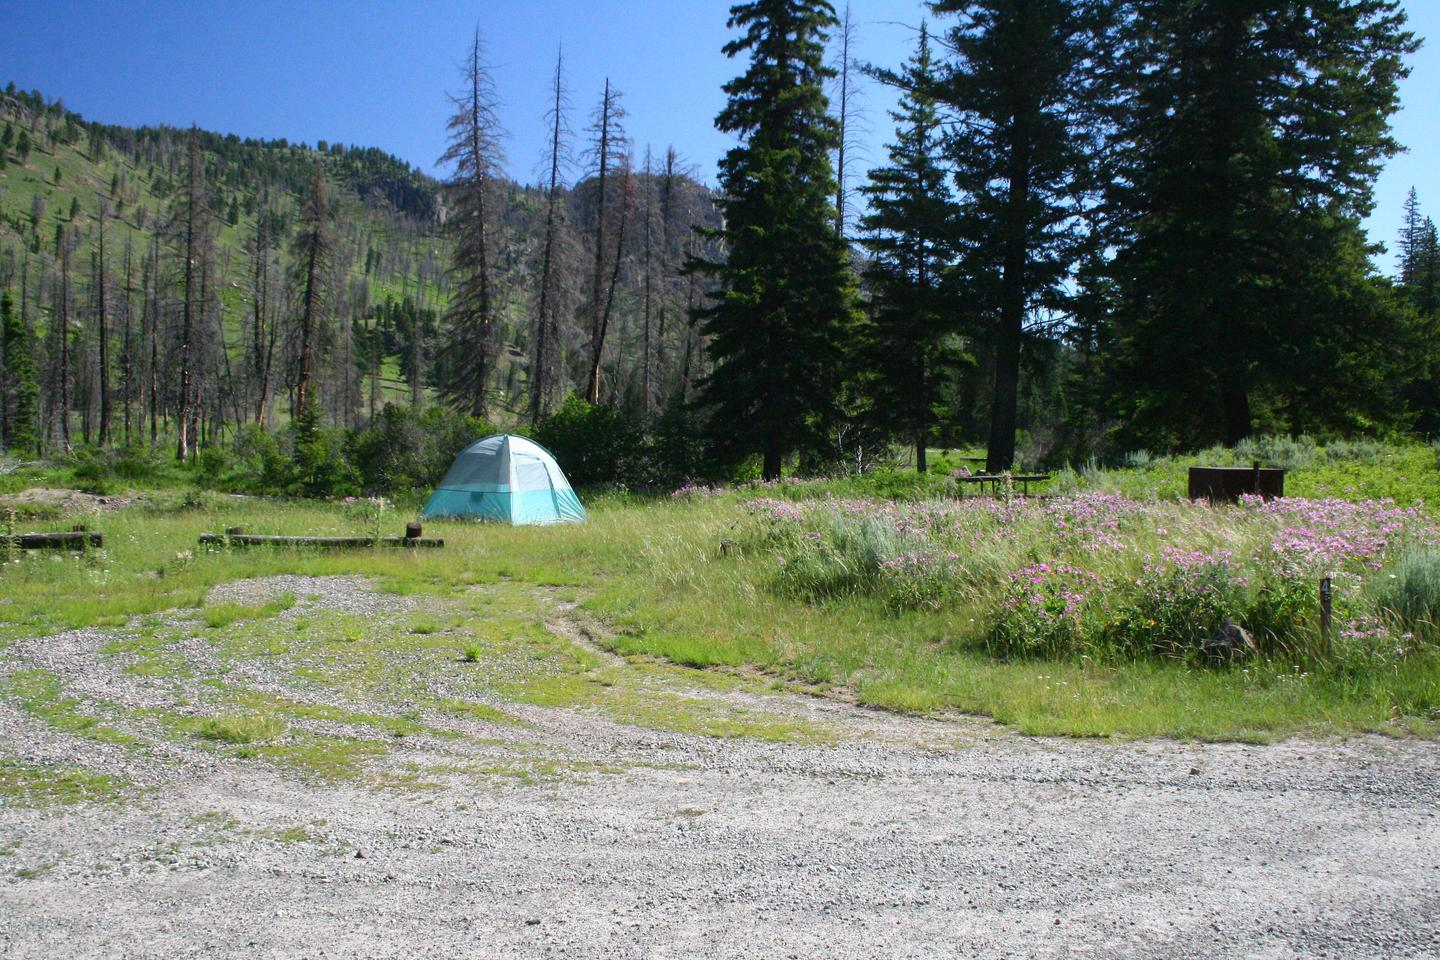 Slough Creek Campground Site #4.Slough Creek Campground Site #4